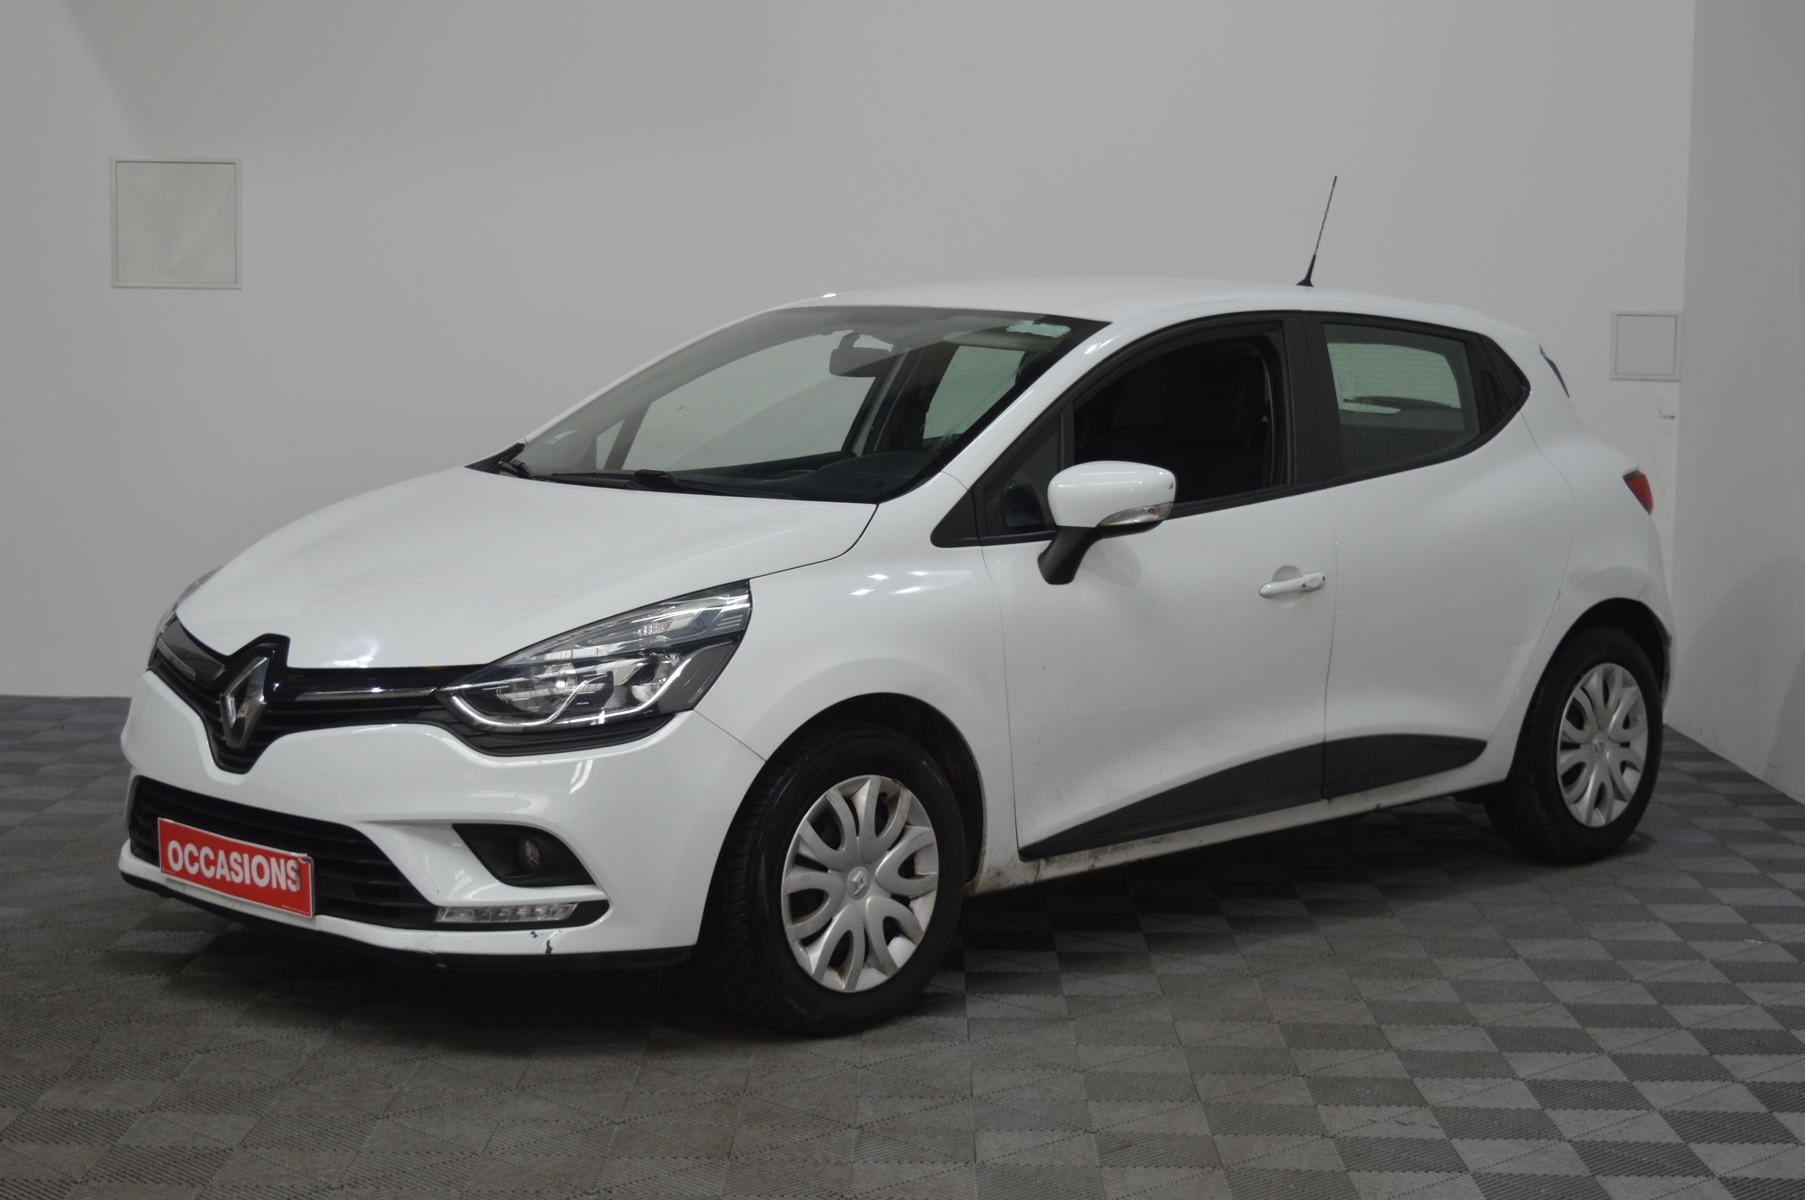 RENAULT CLIO IV SOCIETE 2018 à 7400 € - Photo n°1